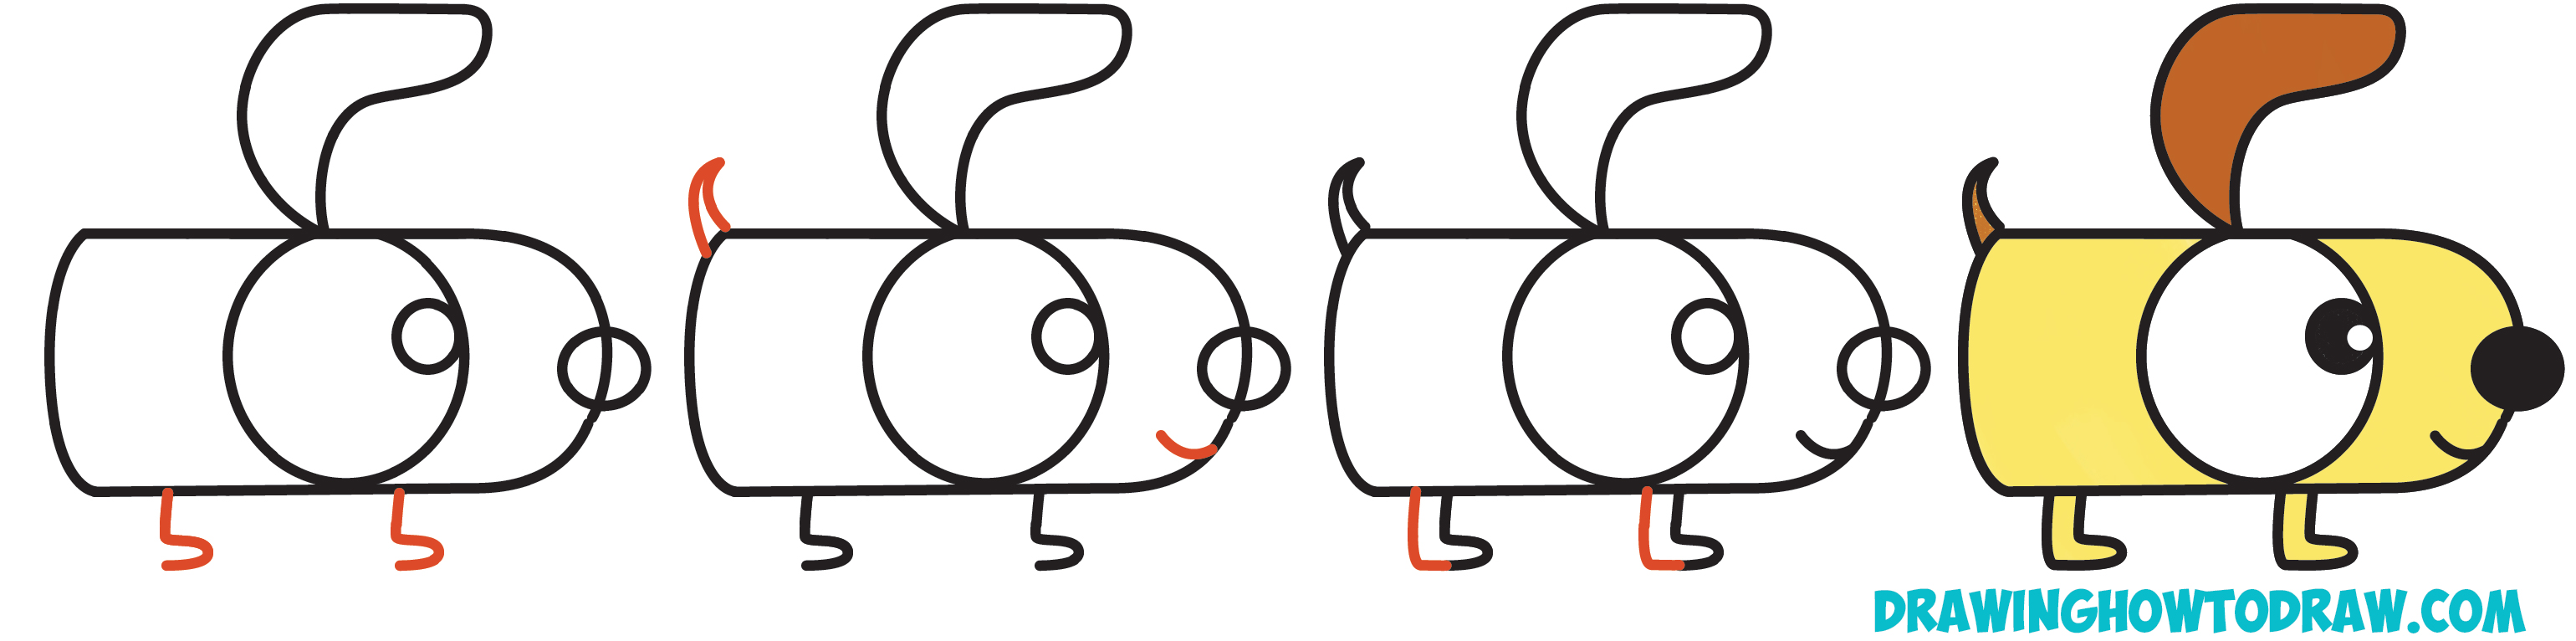 3080x766 How To Draw A Cartoon Dog From Letters G And H Easy Step By